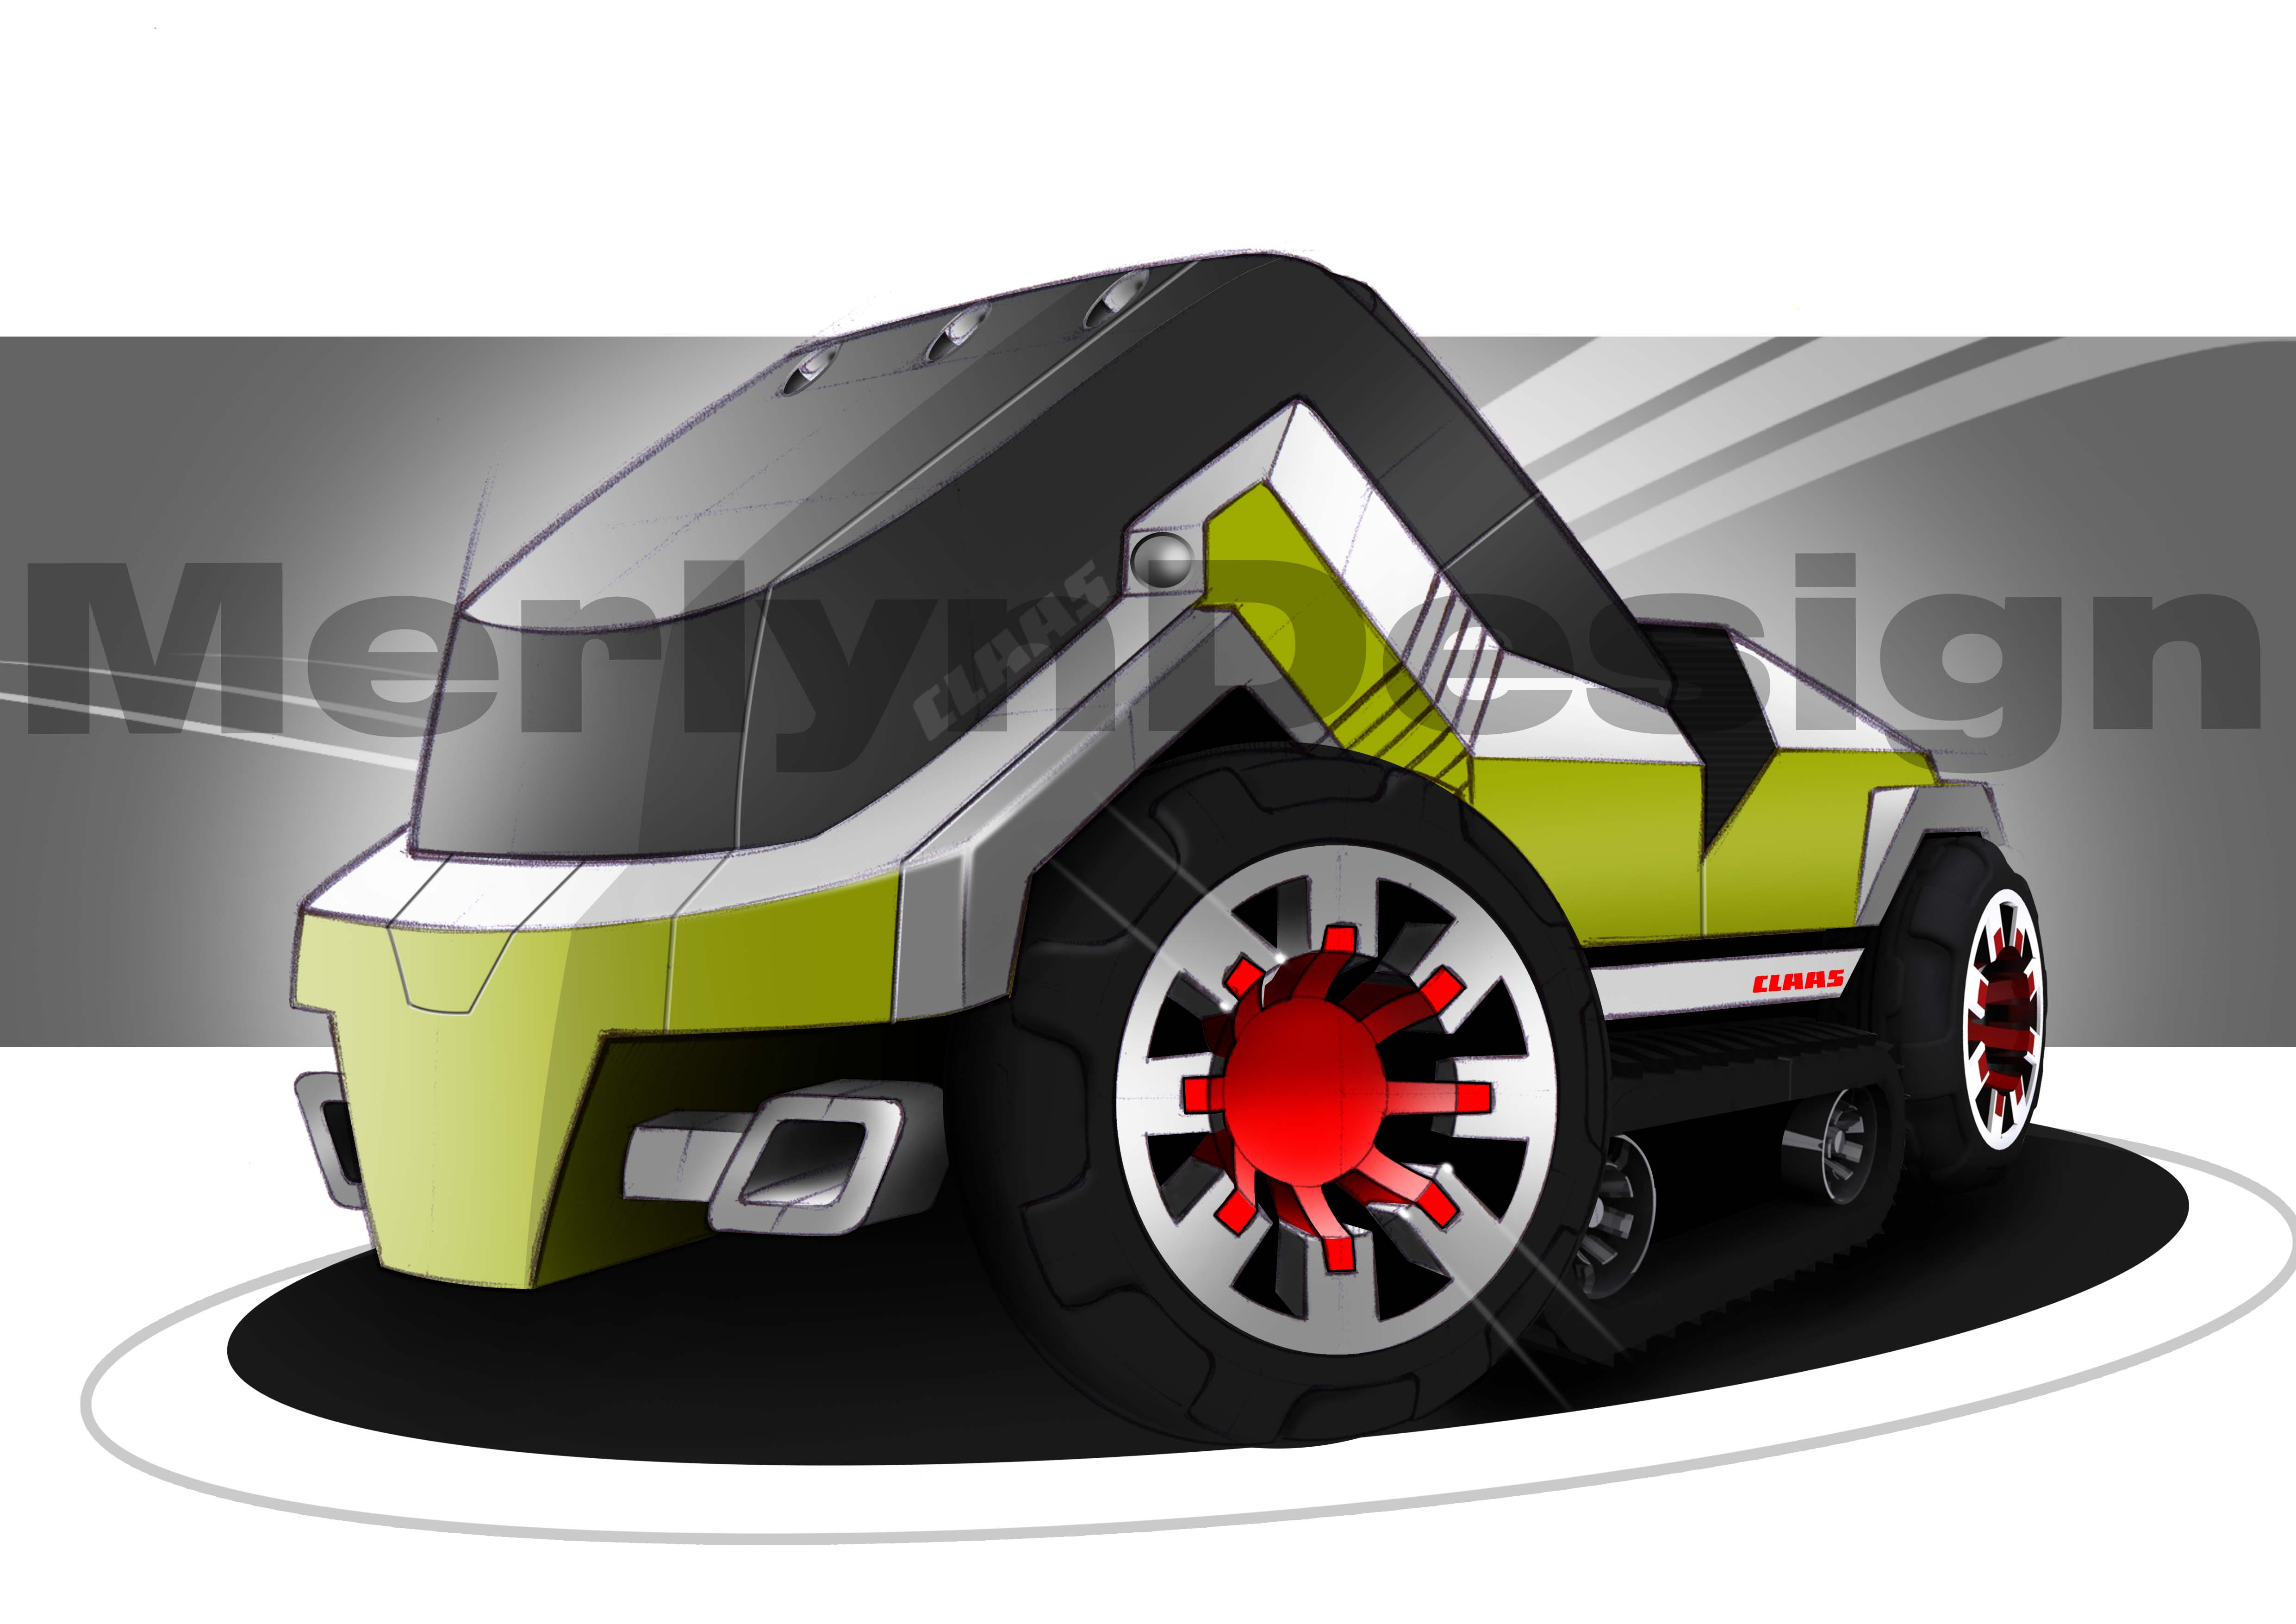 Tractor Wheels Concept : Images about design tractors on pinterest